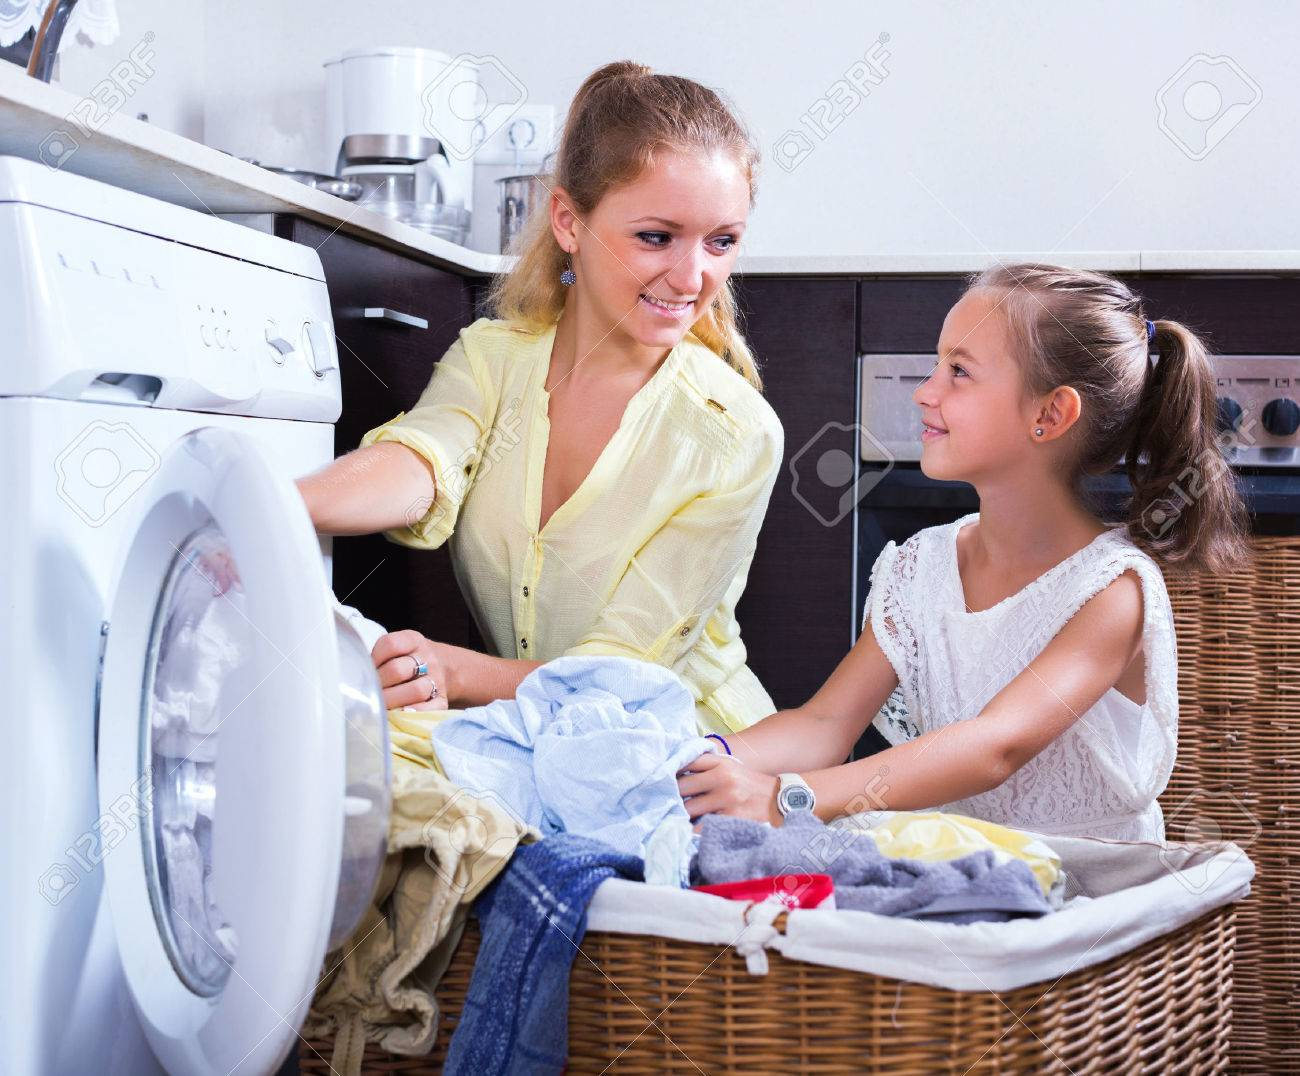 Young housewife and little girl doing laundry together - 51353226